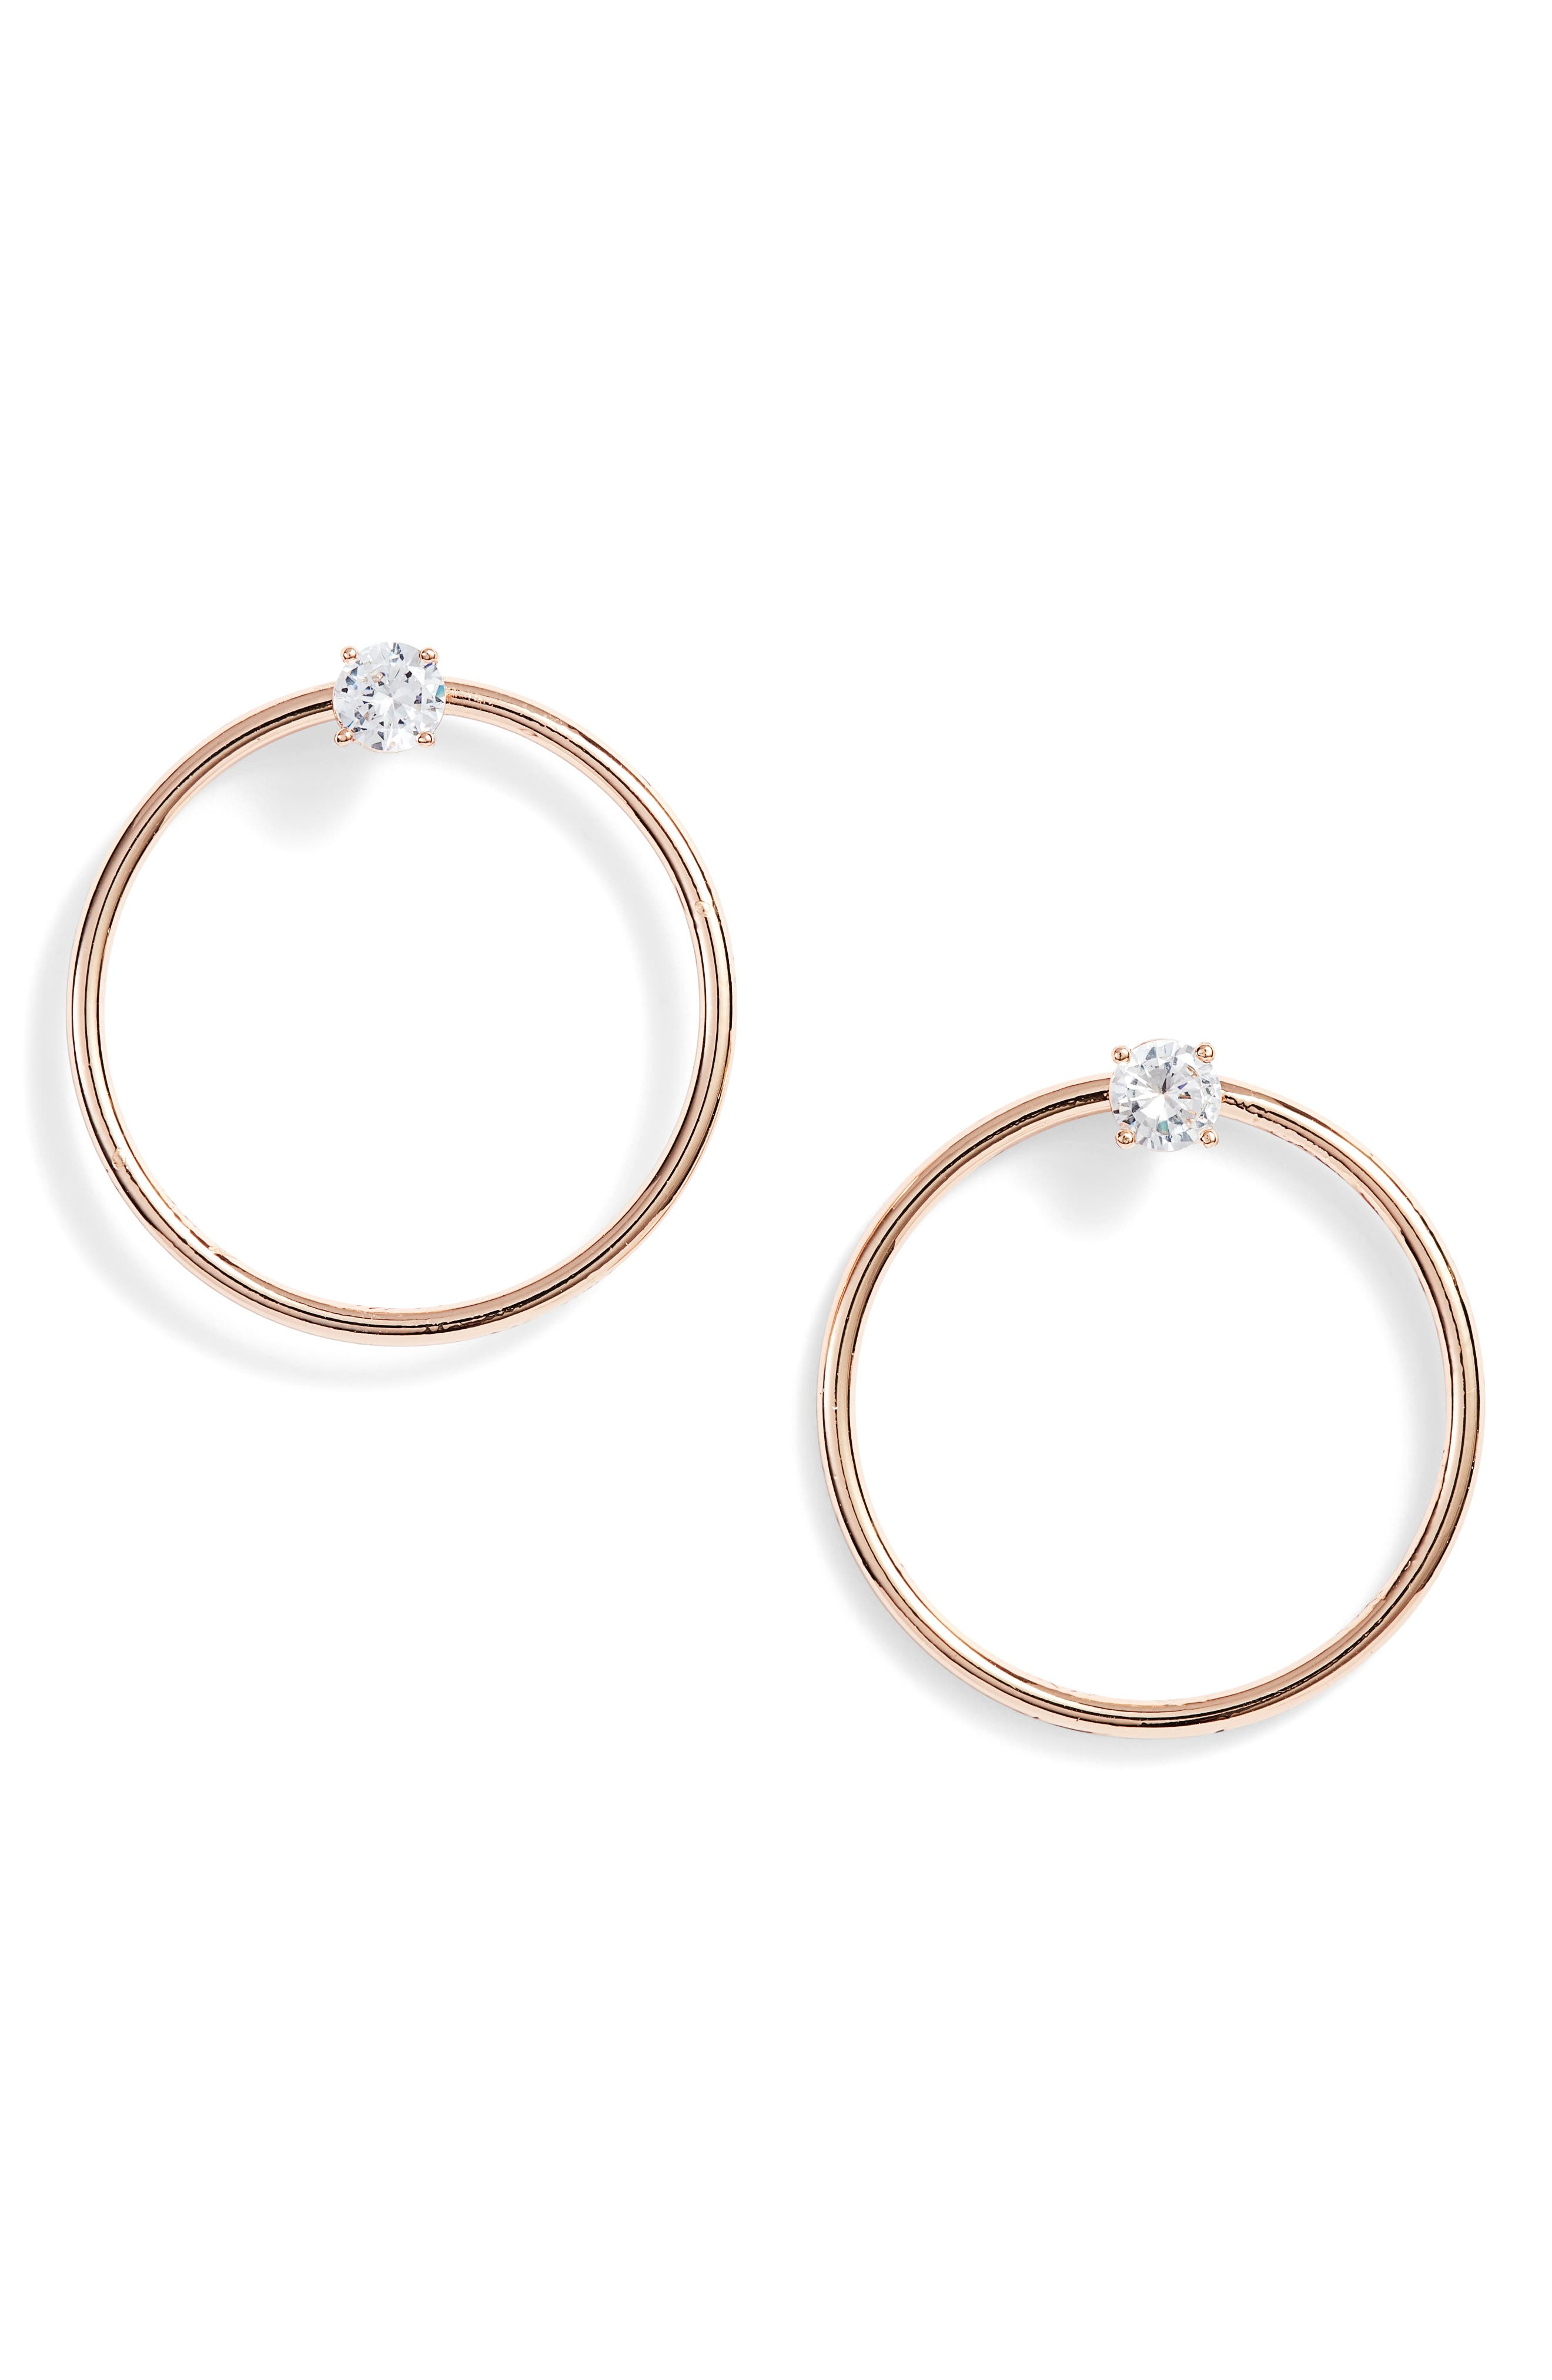 Crystal Stud Hoop Earrings,                             Main thumbnail 1, color,                             Rose Gold